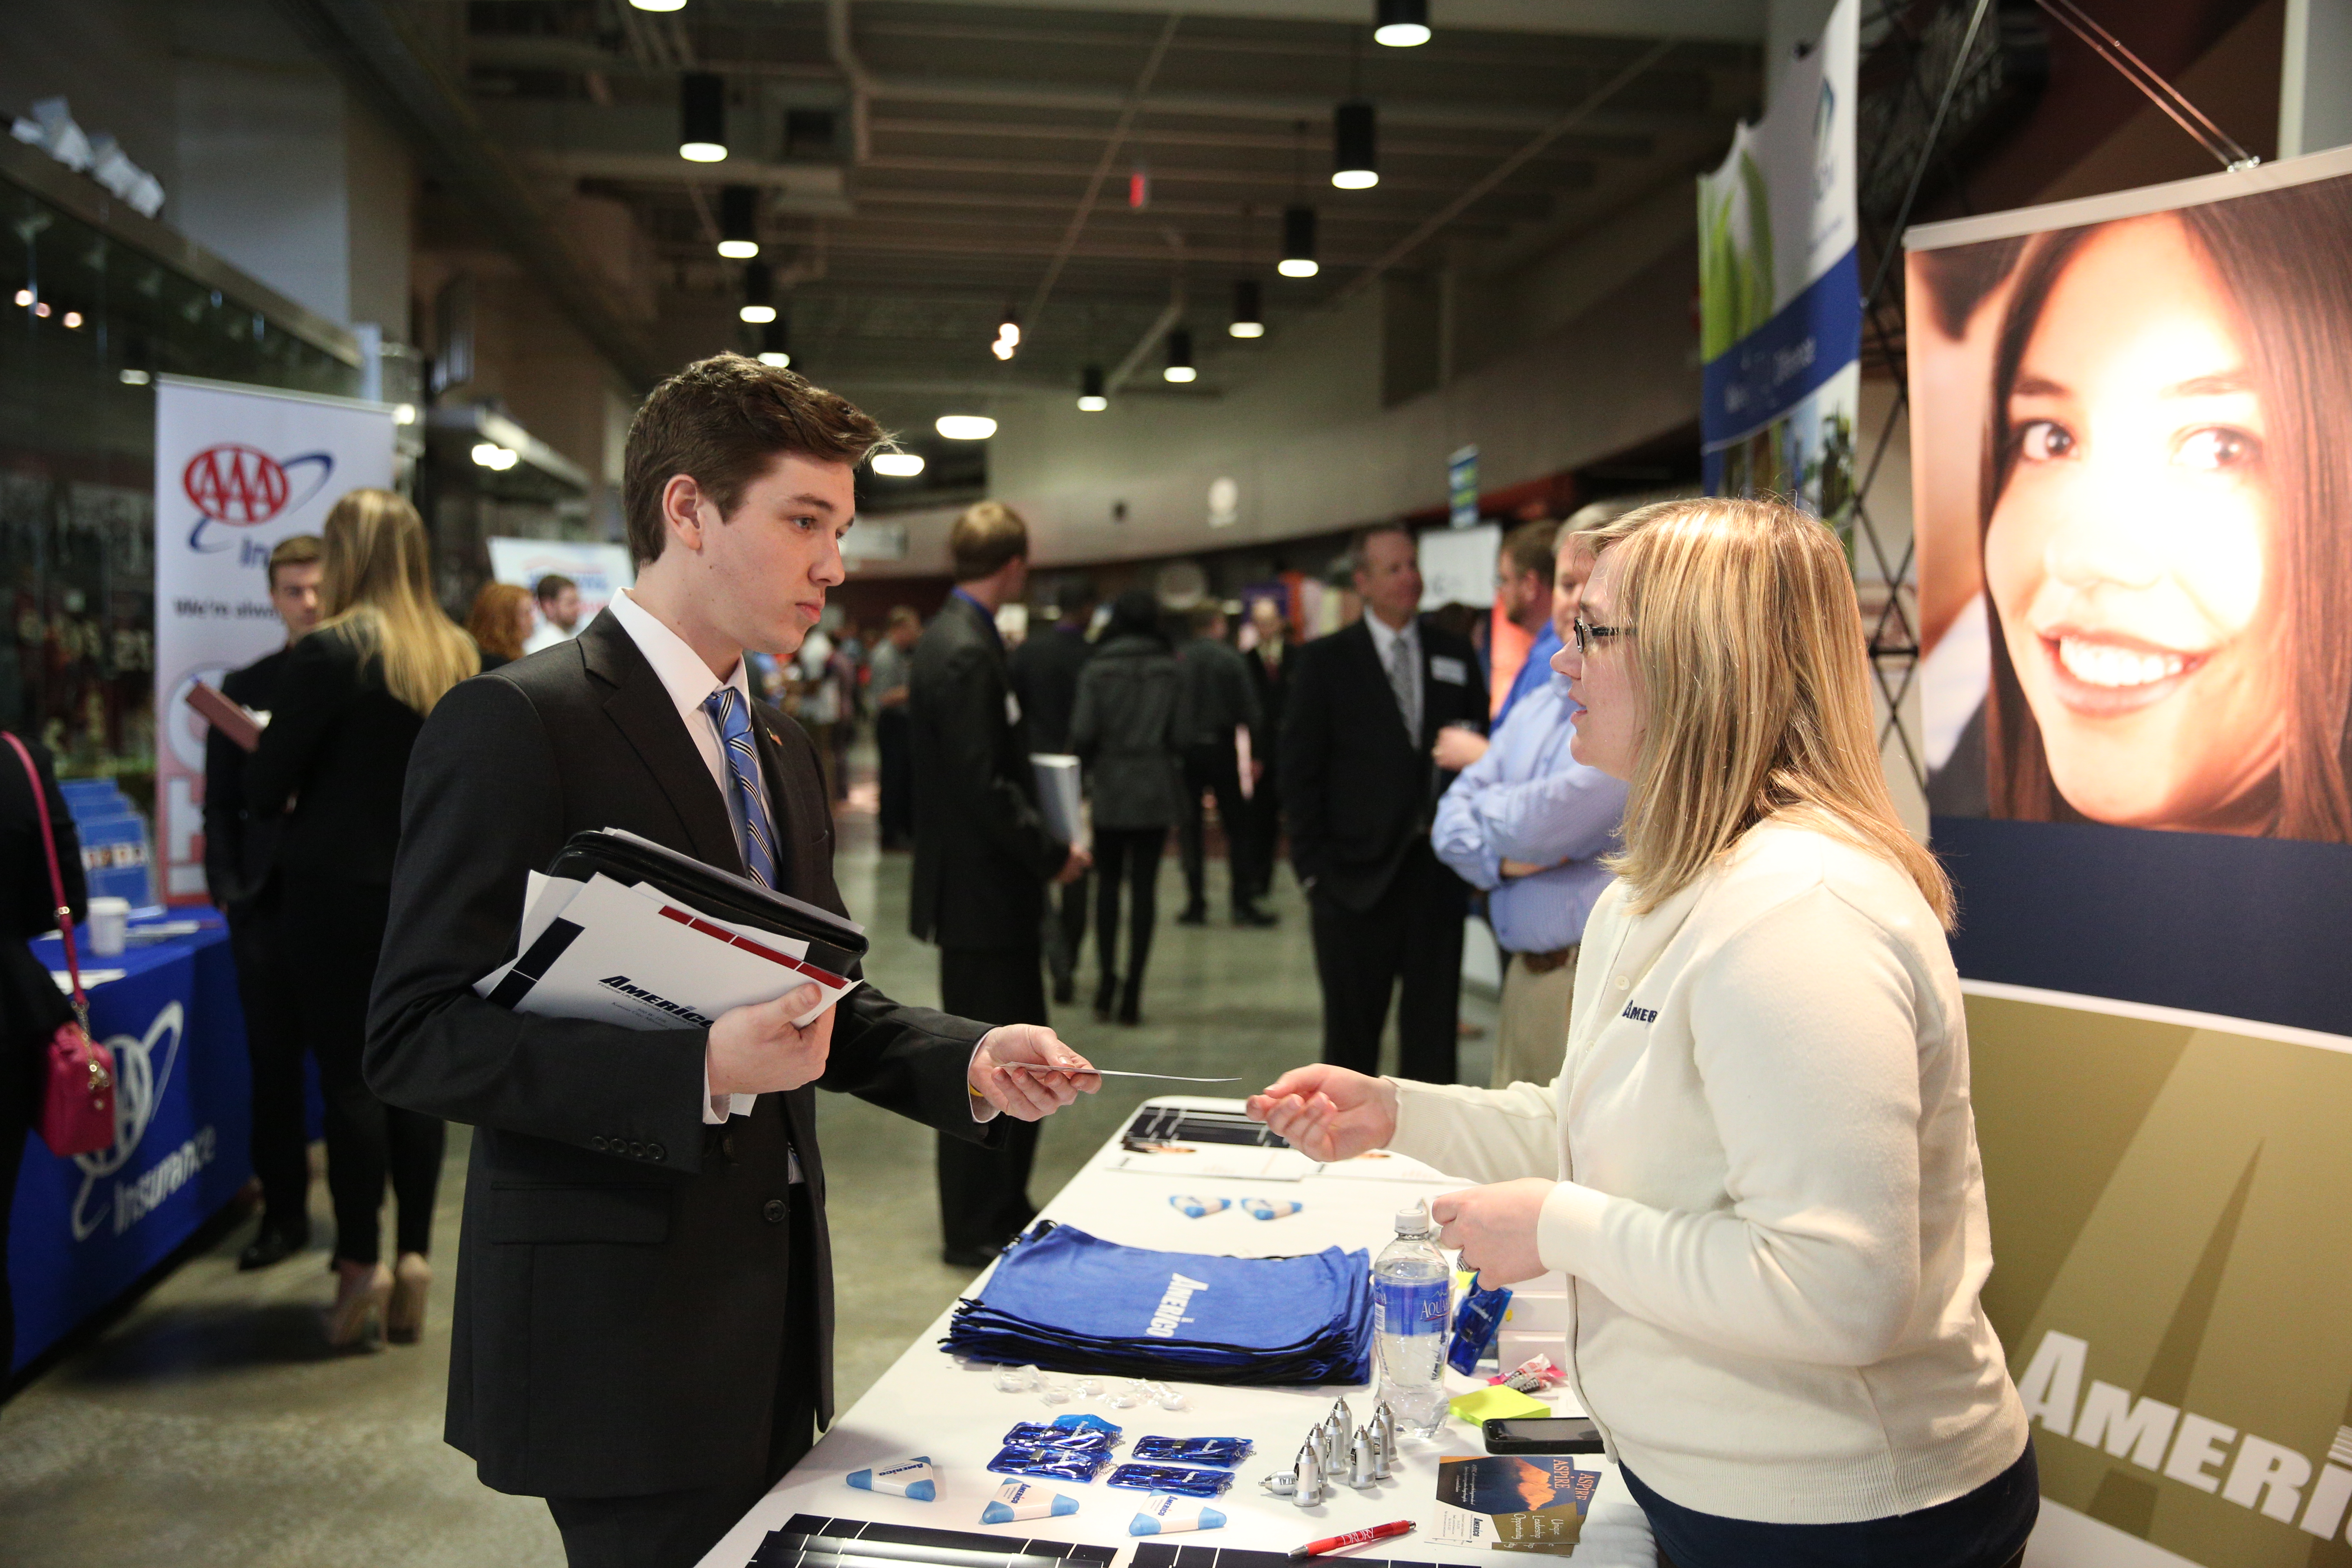 Career Expo 2015 – An Opportunity for your Student to Connect